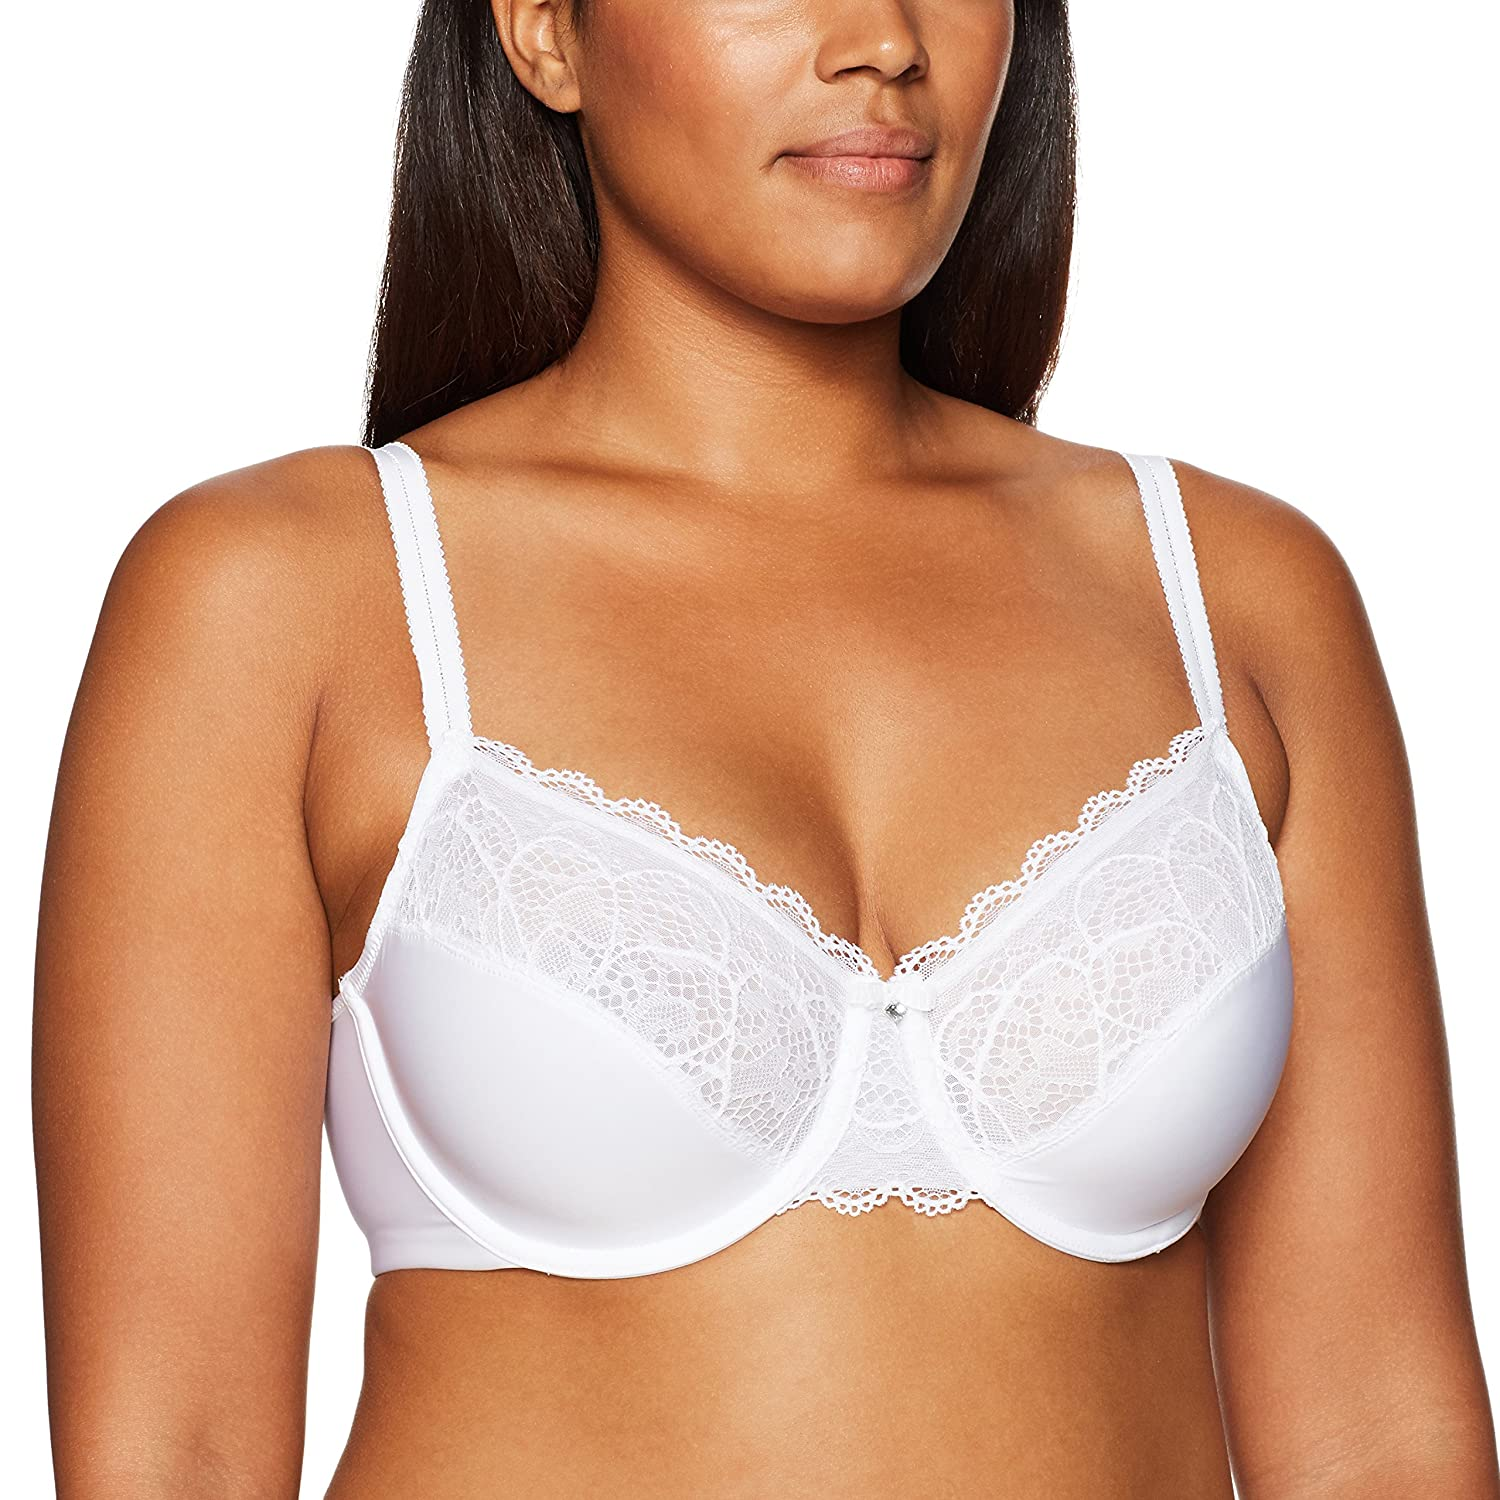 Bali Women's Lace Desire Smoothing Underwire Bra B1002